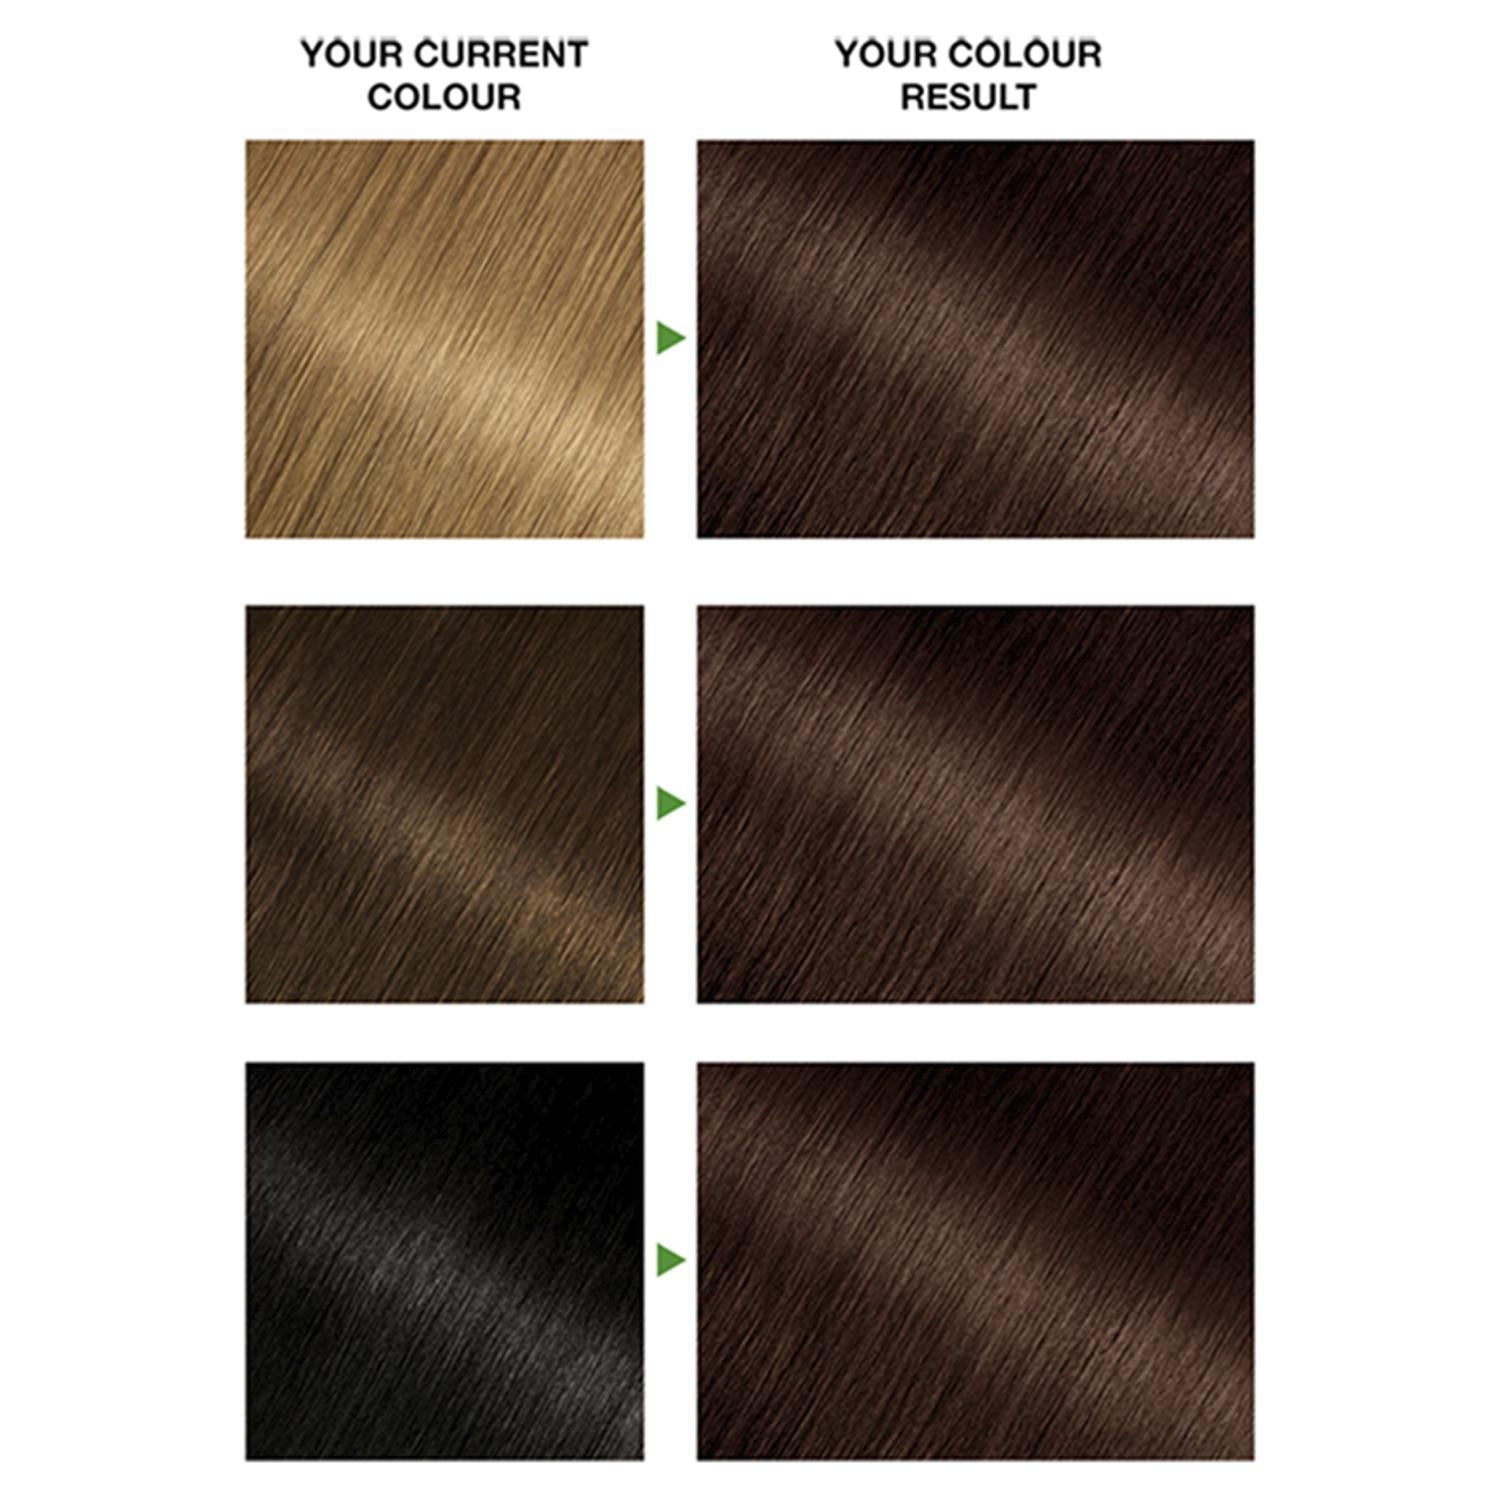 thumbnail 75 - 3 Pack Garnier Nutrisse Permanent Hair Dye With Different Shades